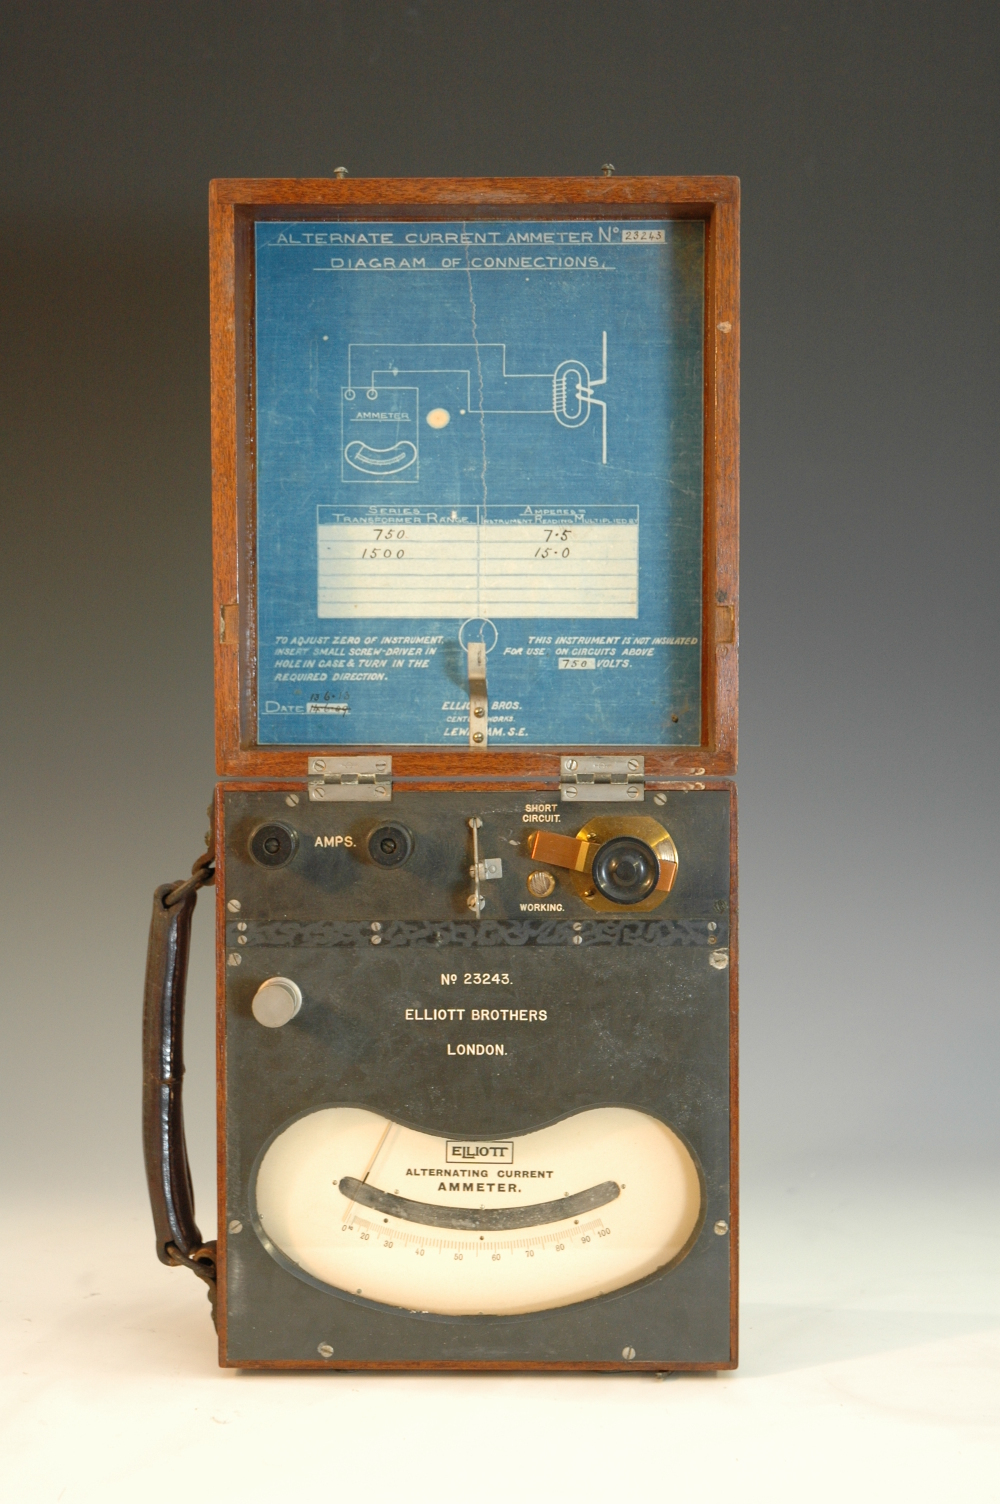 preview image for AC Ammeter, by Elliott Brothers, London, 1909